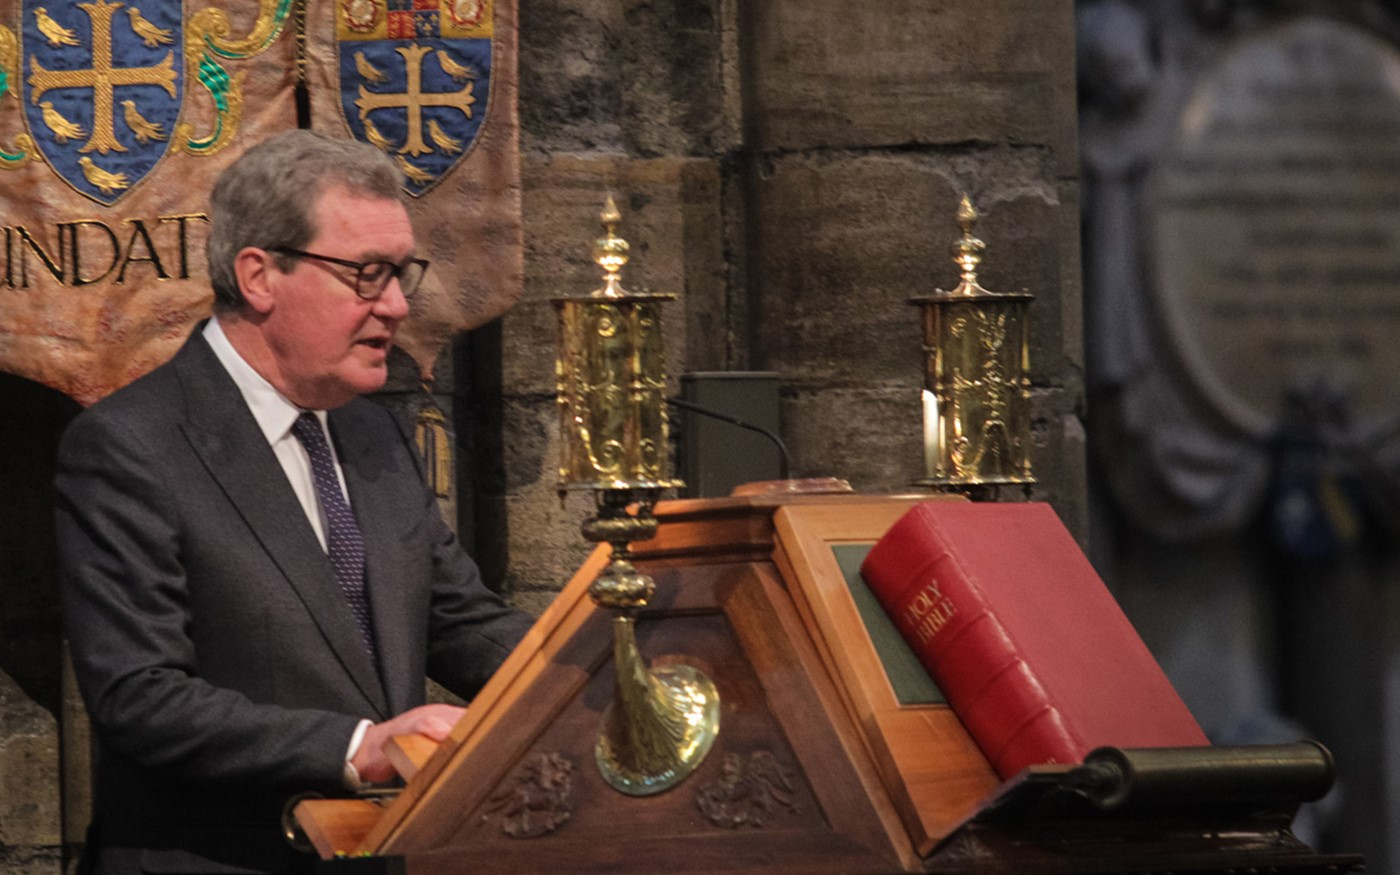 His Excellency the High Commissioner for Australia, The Honourable Alexander Downer AC, reads St John 15: 9-17